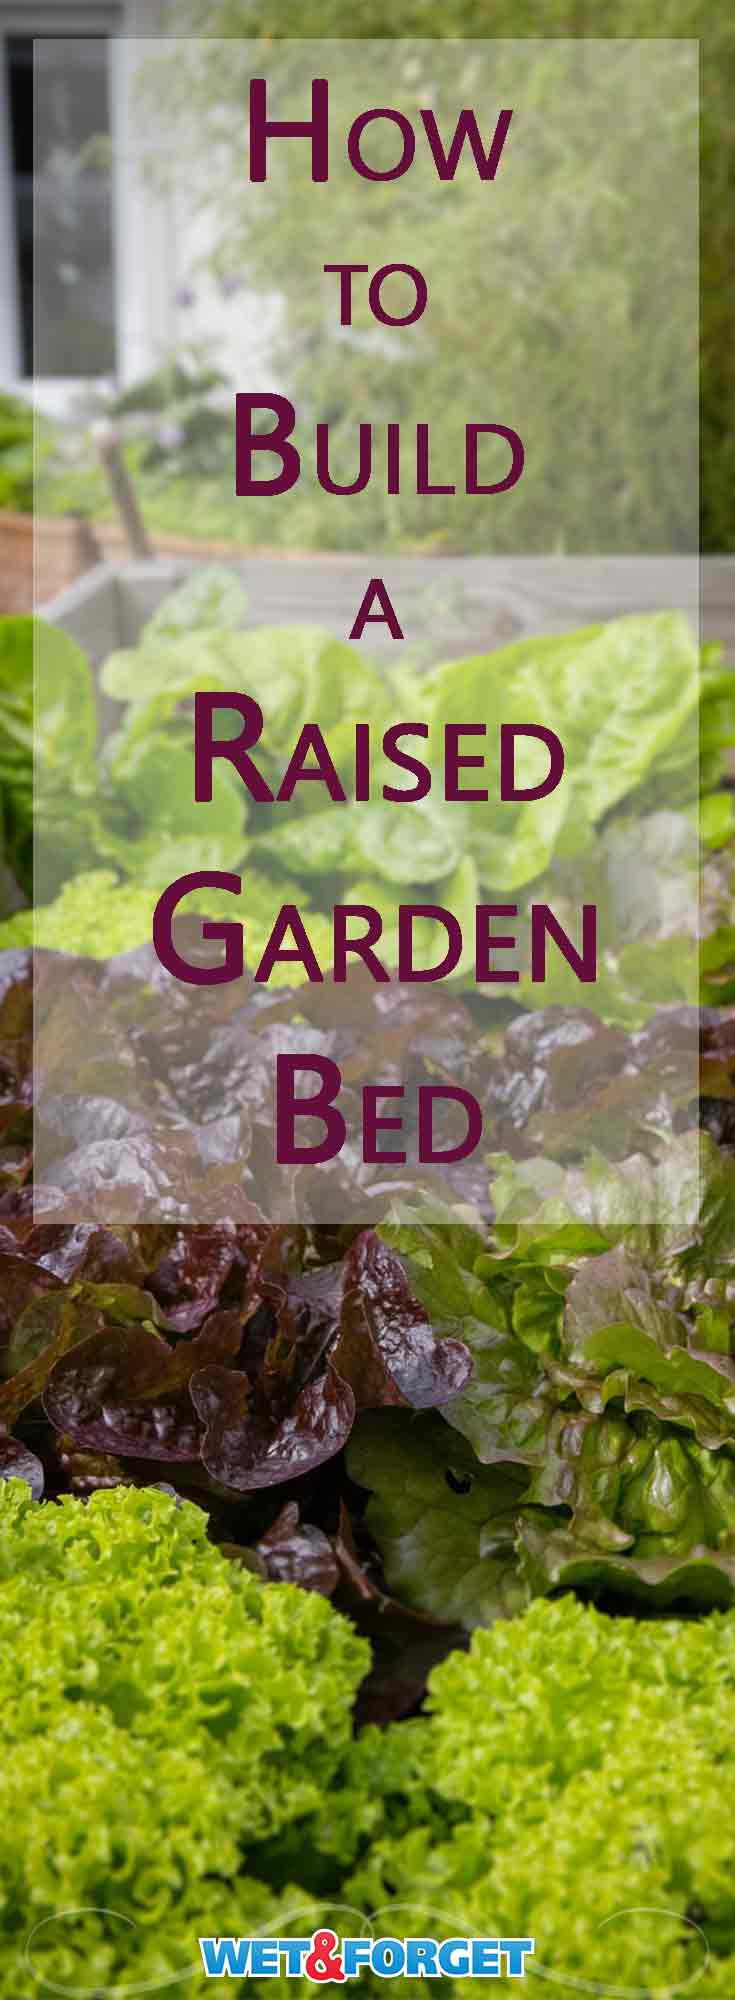 Adding a raised garden bed to your yard can be very beneficial. Not only do raised garden beds have a longer growing season, they also make it easier to optimize your soil composition. Discover how to build your own raised garden bed and enjoy your harvest.